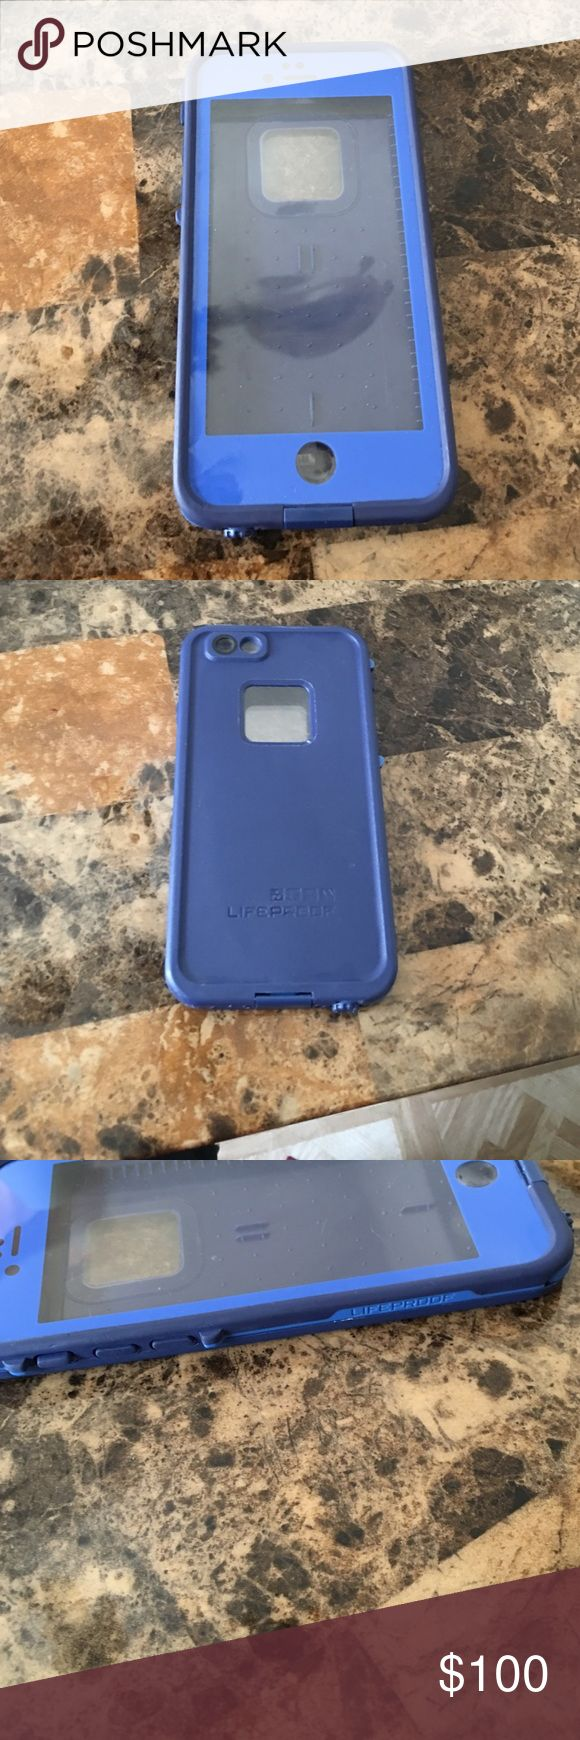 iPhone 6 life proof case Dirt proof water proof snow proof and shock proof life proof iPhone 6 case LifeProof Accessories Phone Cases